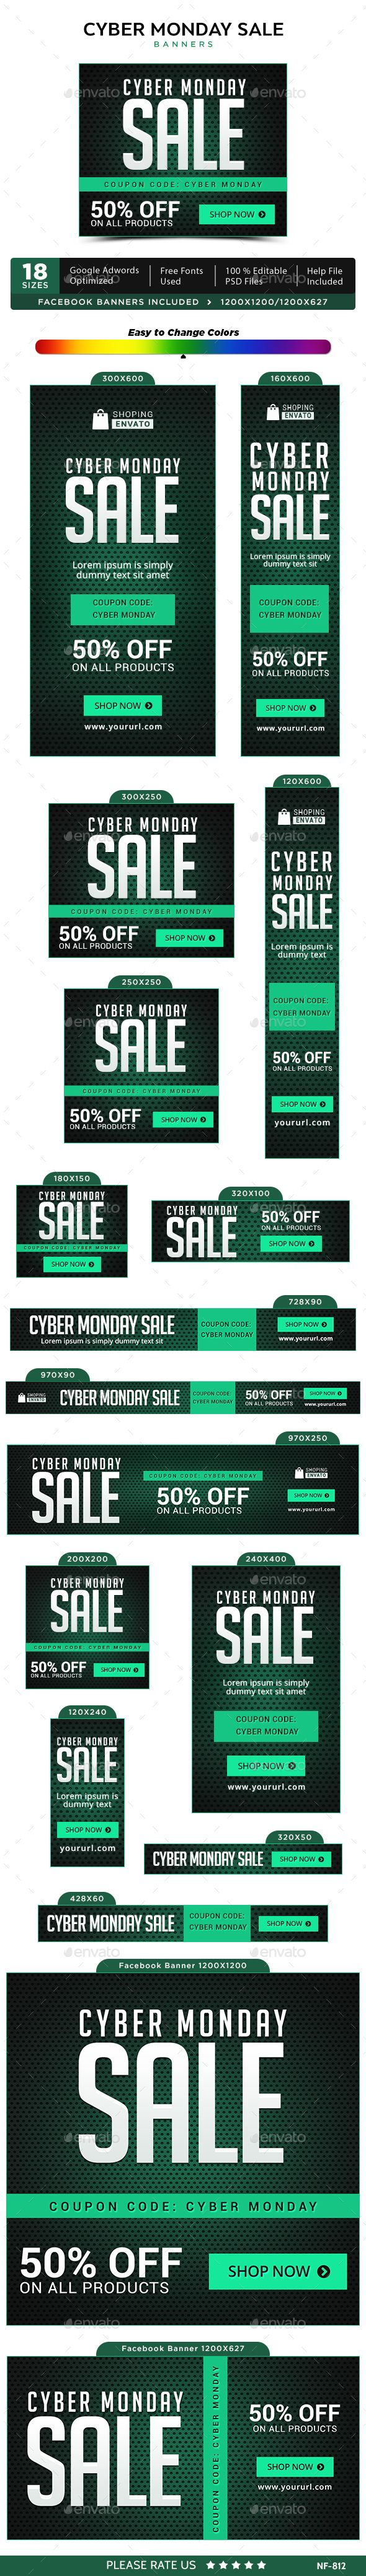 Cyber Monday Sale Web Banners Template PSD #design Download: http://graphicriver.net/item/cyber-monday-sale-banners/13686264?ref=ksioks